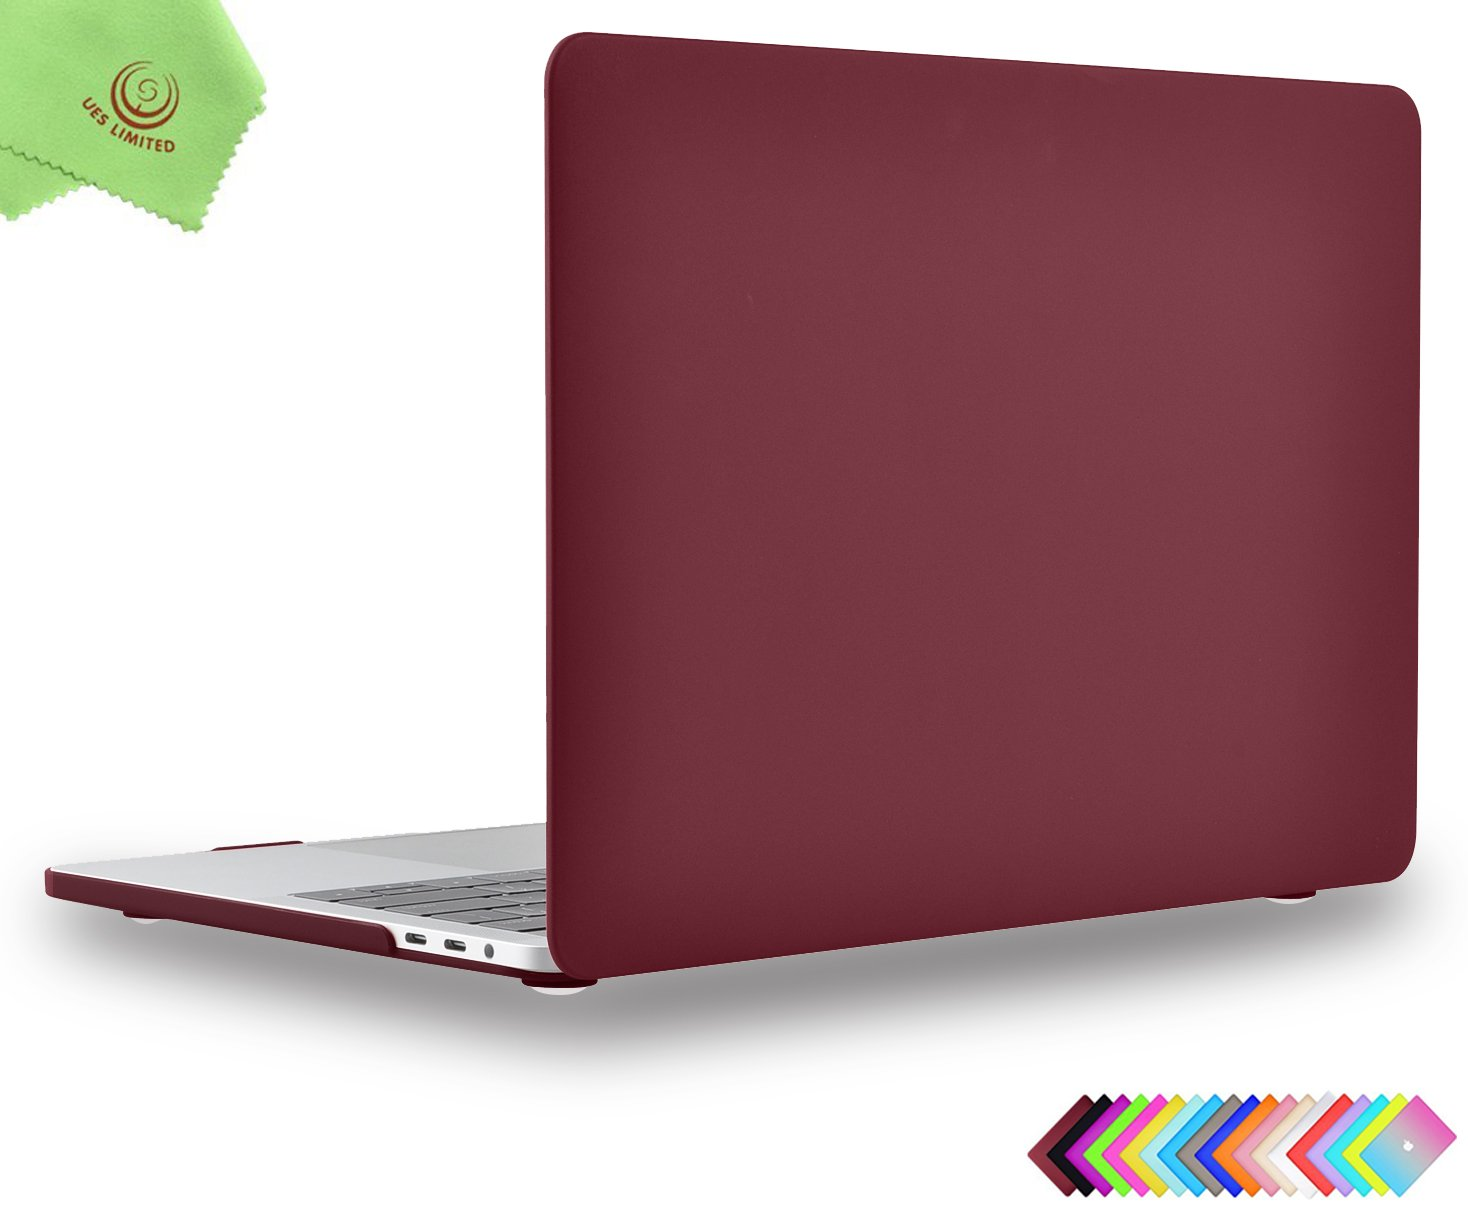 UESWILL MacBook Pro 15 inch Case 2018 /& 2017 /& 2016 Smooth Soft-Touch Hard Case for MacBook Pro 15 with Touch Bar//Touch ID Wine Red + Microfibre Cleaning Cloth Model: A1990// A1707